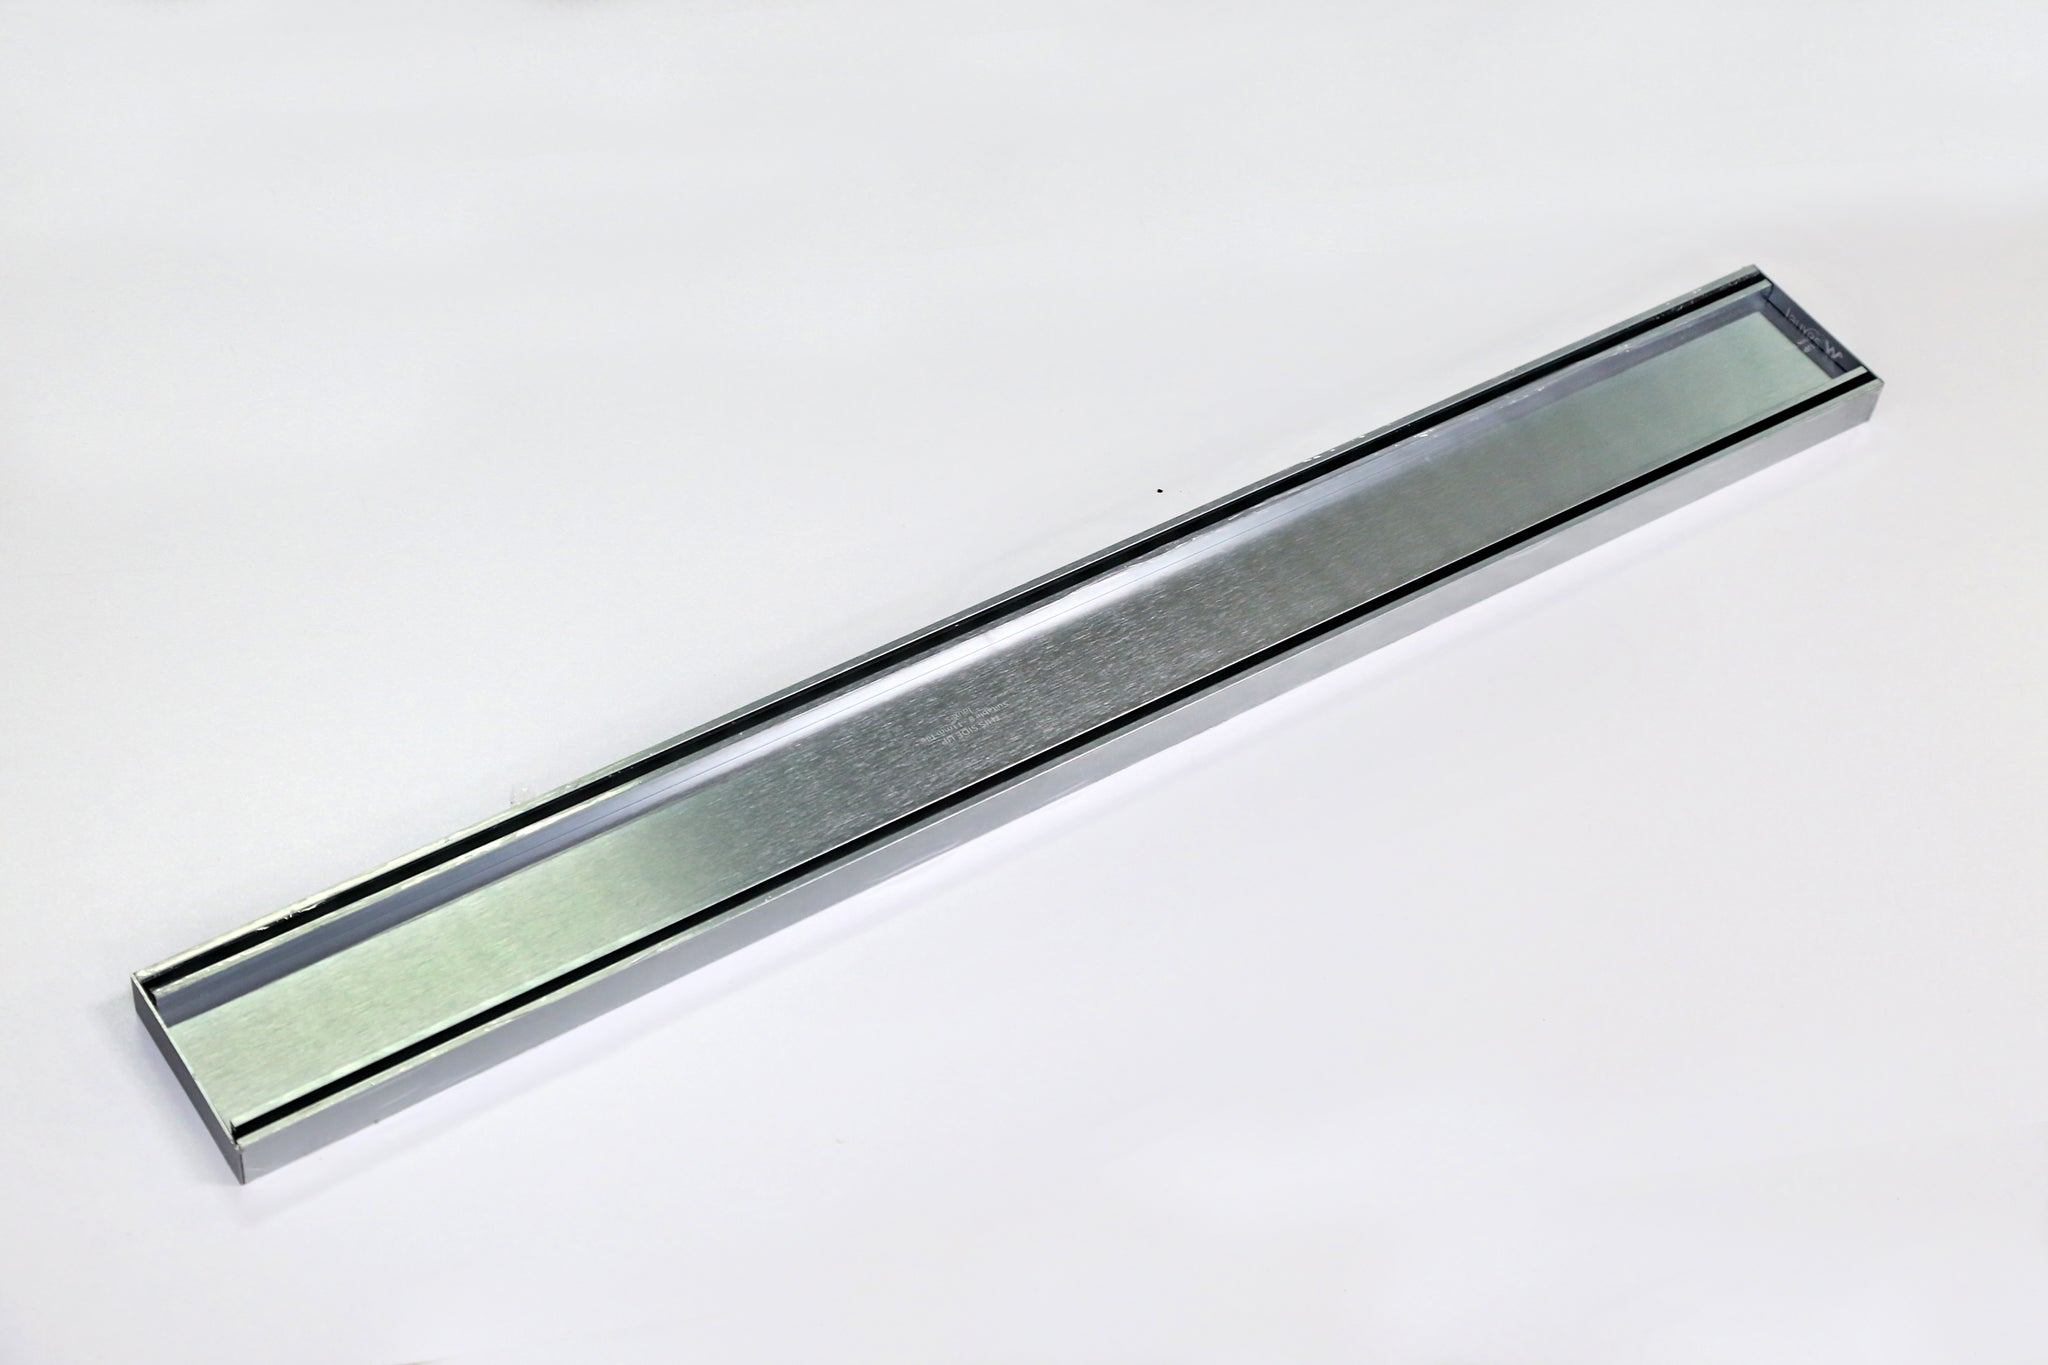 LAUXES LINEAR GRATE 900MM SILVER